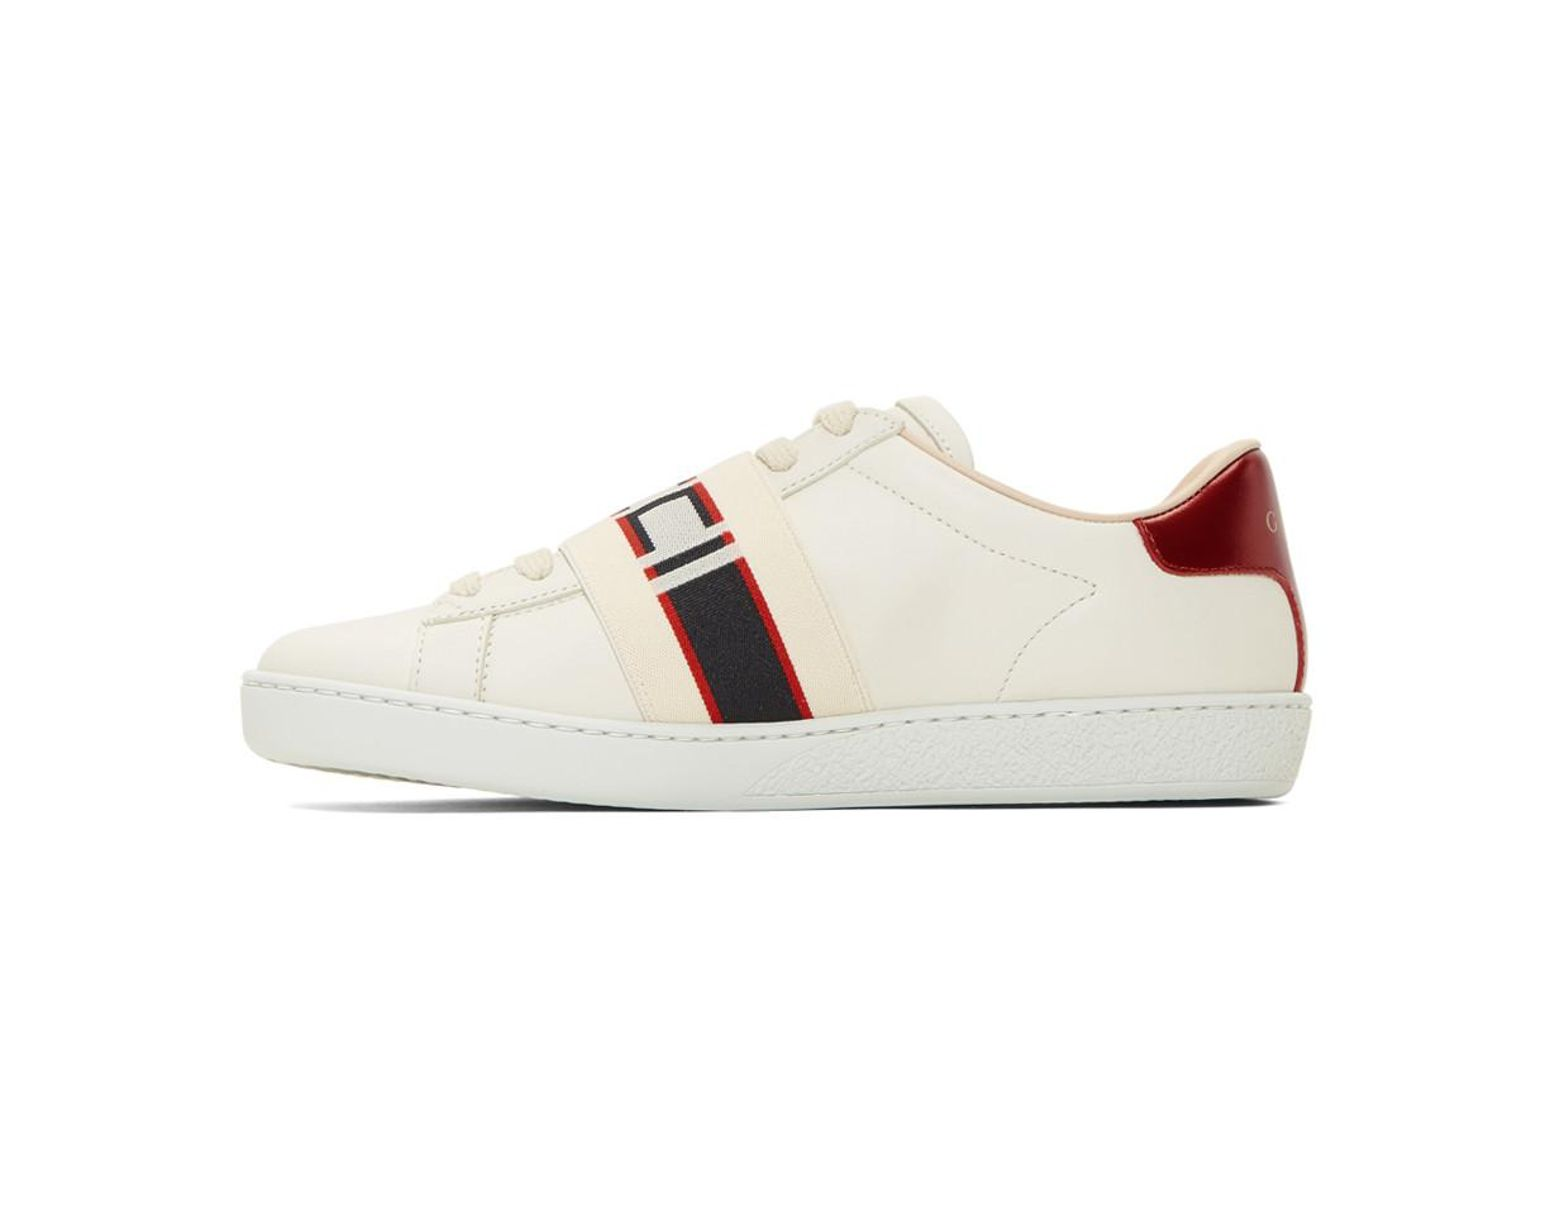 0c4772de940 Lyst - Gucci White Elastic Band New Ace Sneakers in White